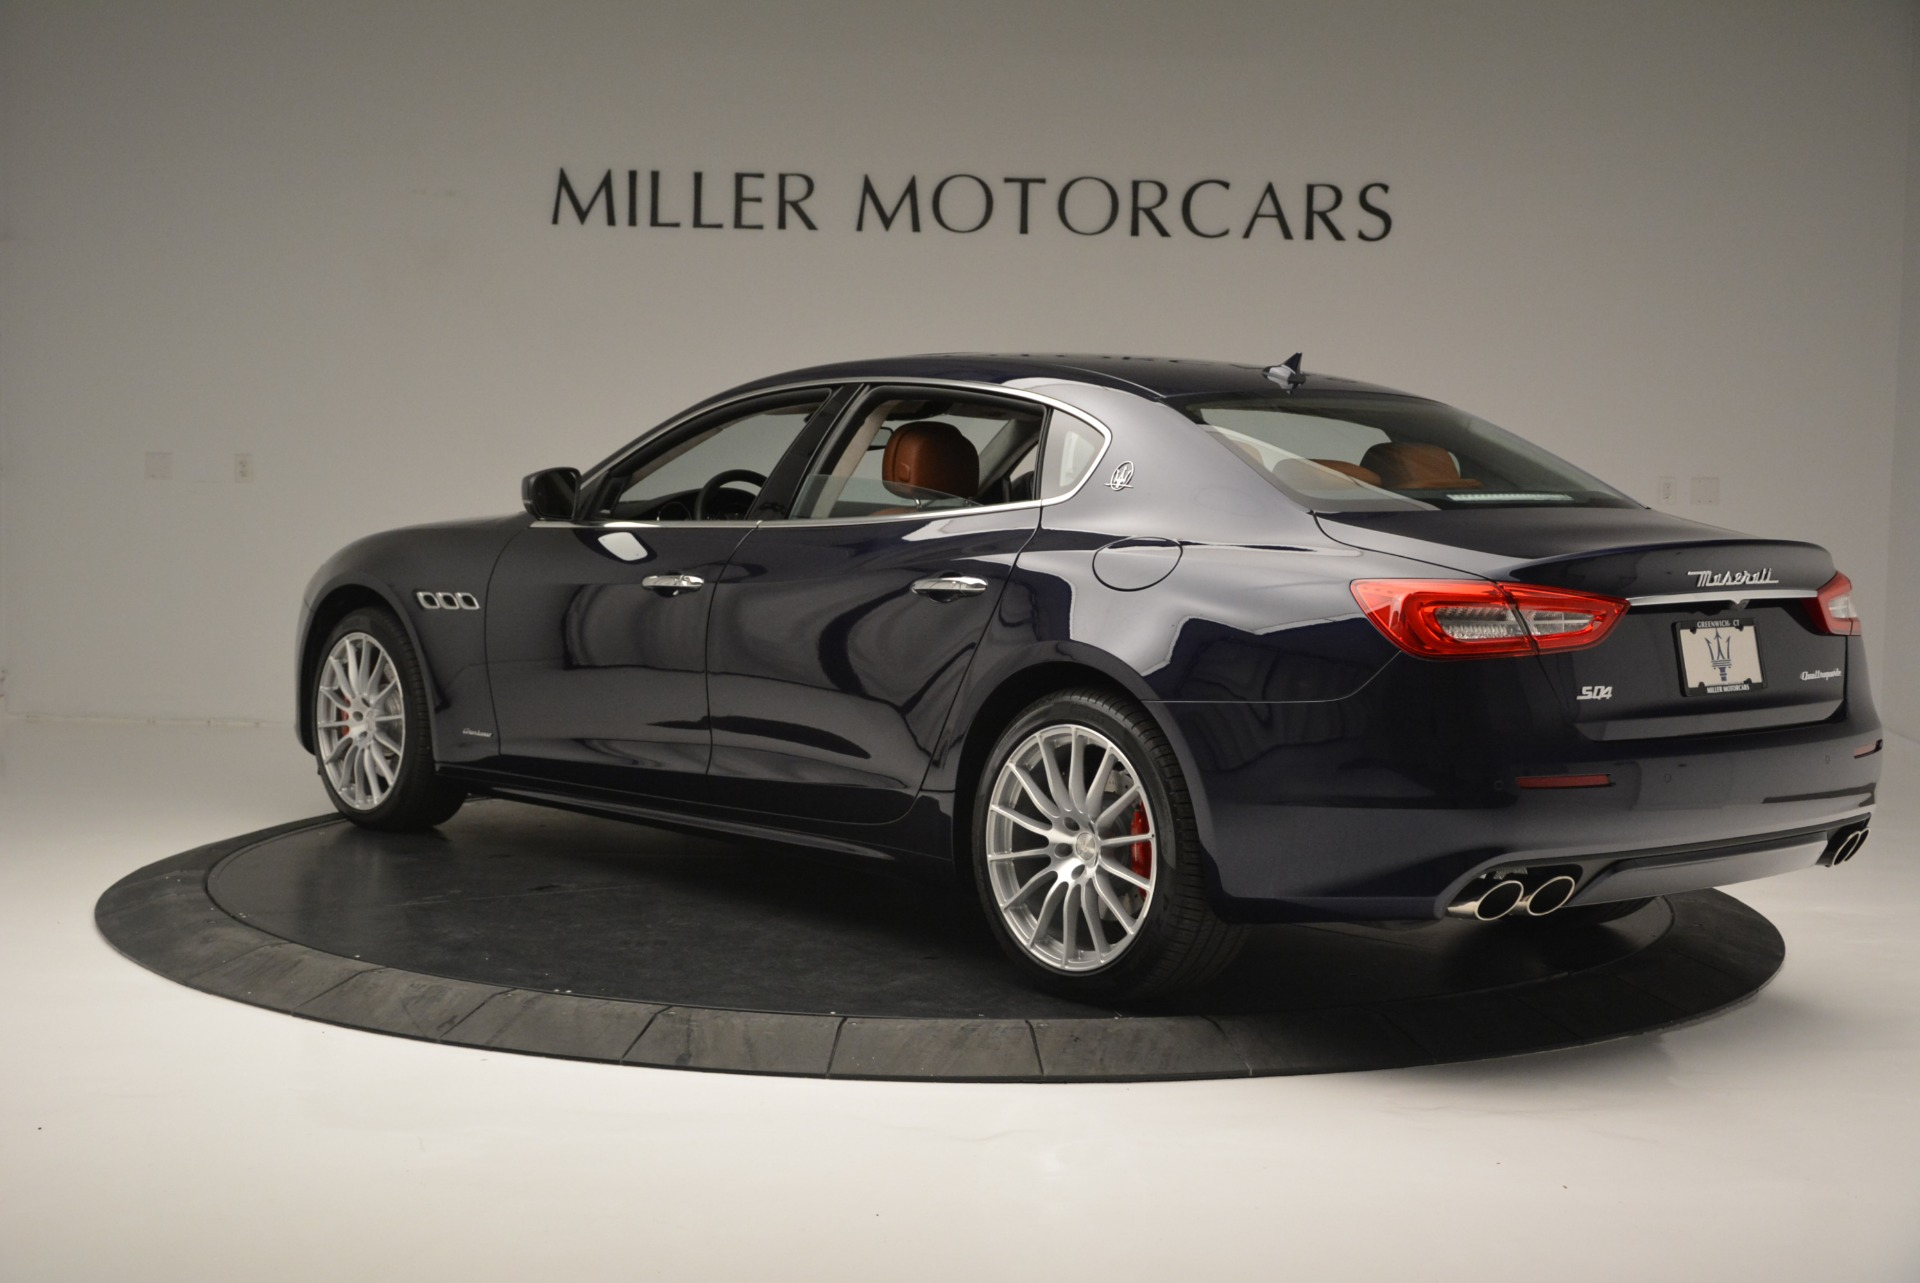 New 2018 Maserati Quattroporte S Q4 GranLusso For Sale In Greenwich, CT 1859_p5